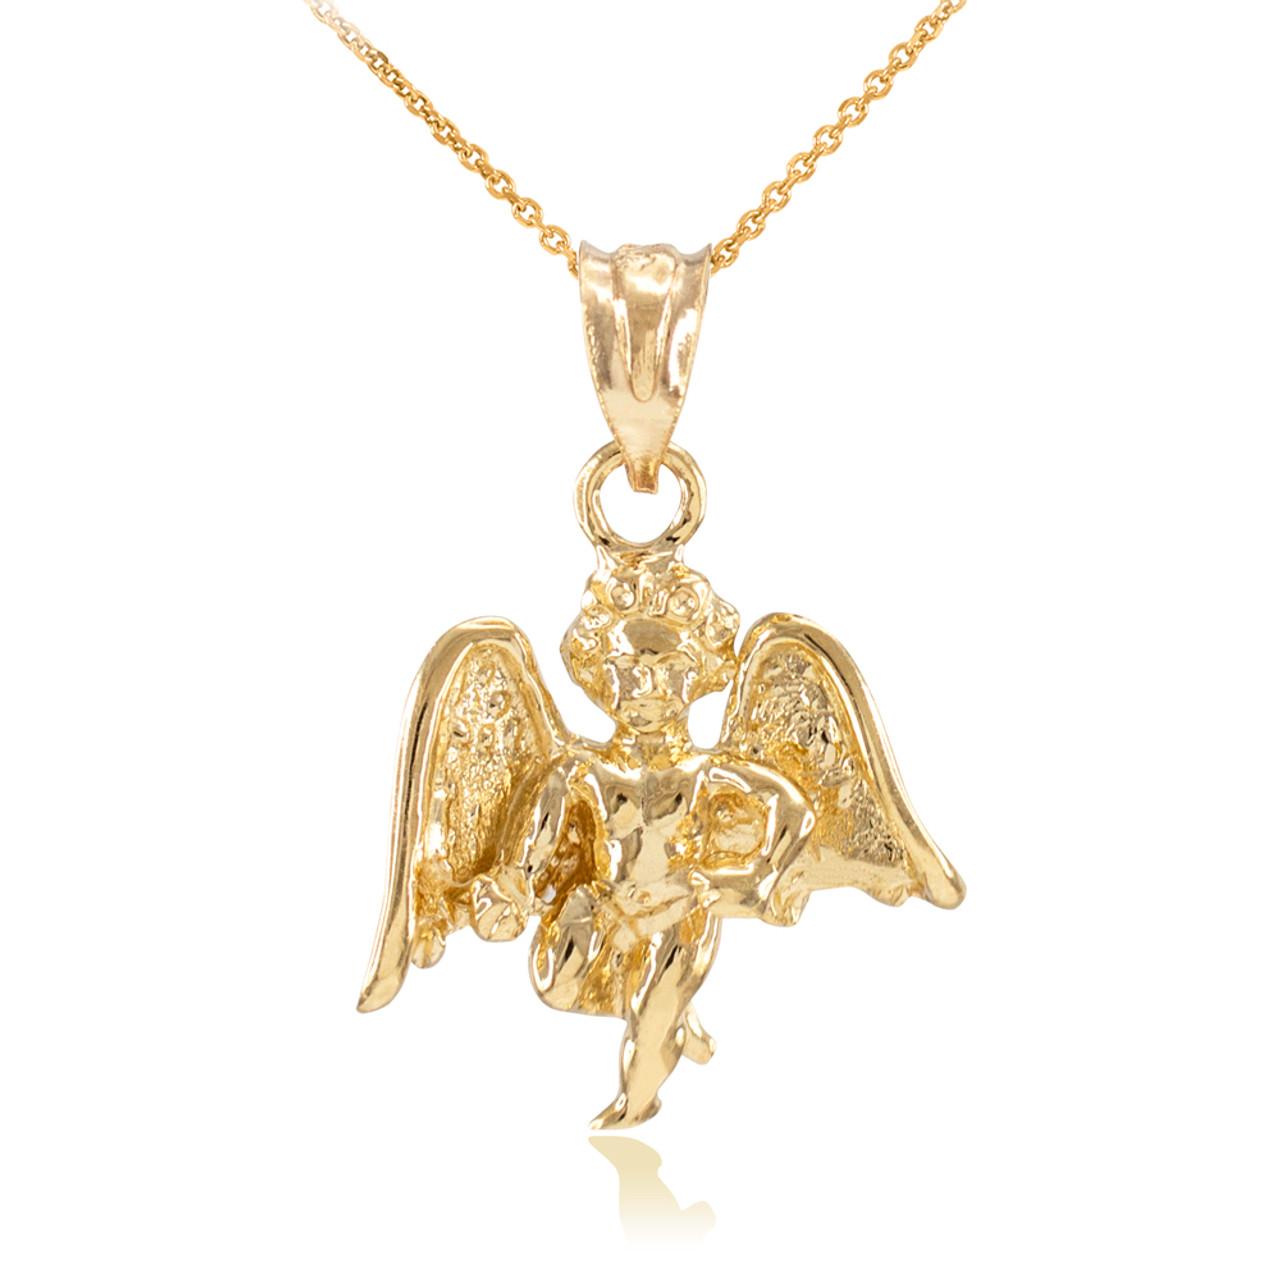 pendant the fallen angel necklace jewelry micro cherub plated gold plug products